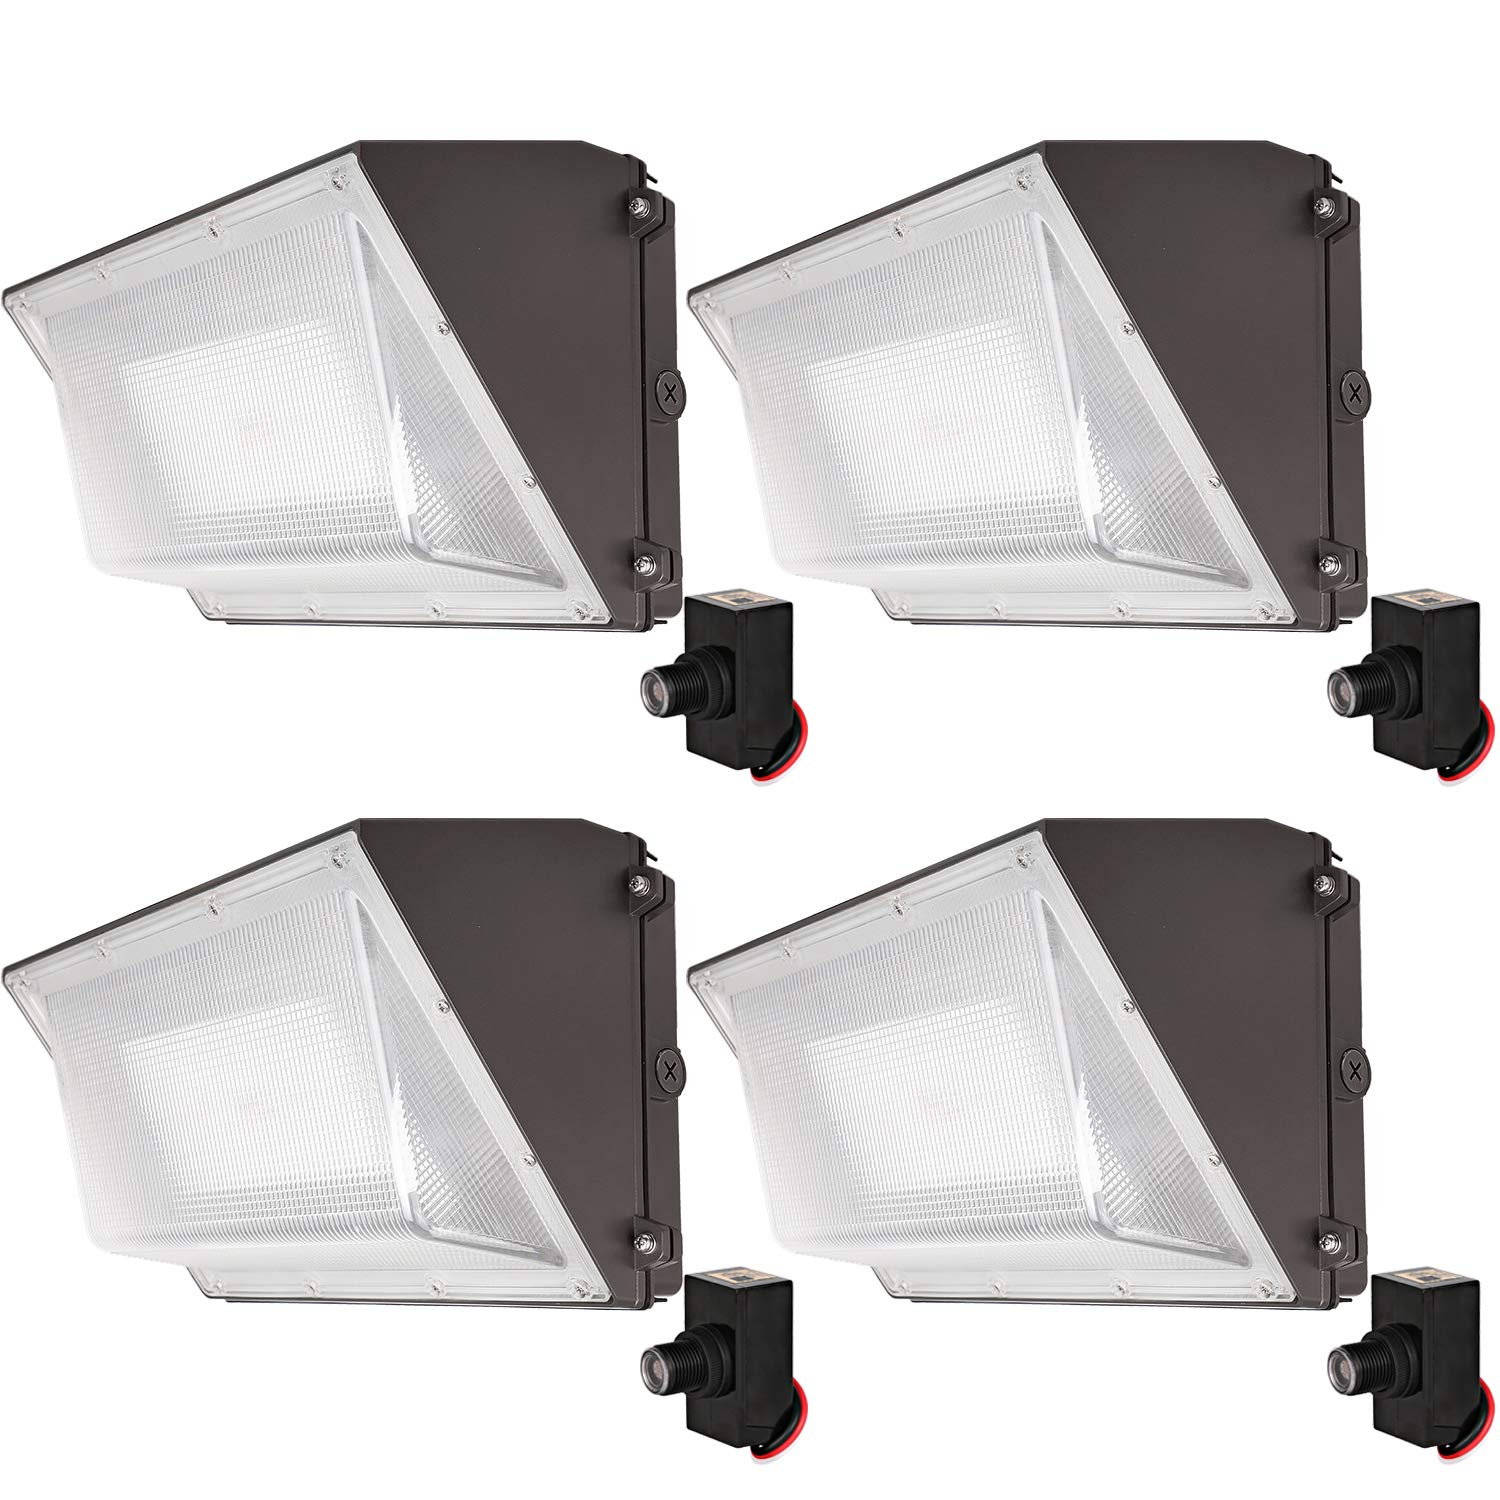 Hykolity High-Output LED Wall Pack with Photocell,120W 15000lm [Brighter Than 400W MH] Dusk to Dawn Outdoor Commercial LED Area Light,1-10V Dimmable,5000K Daylight, DLC Complied - 4 Pack